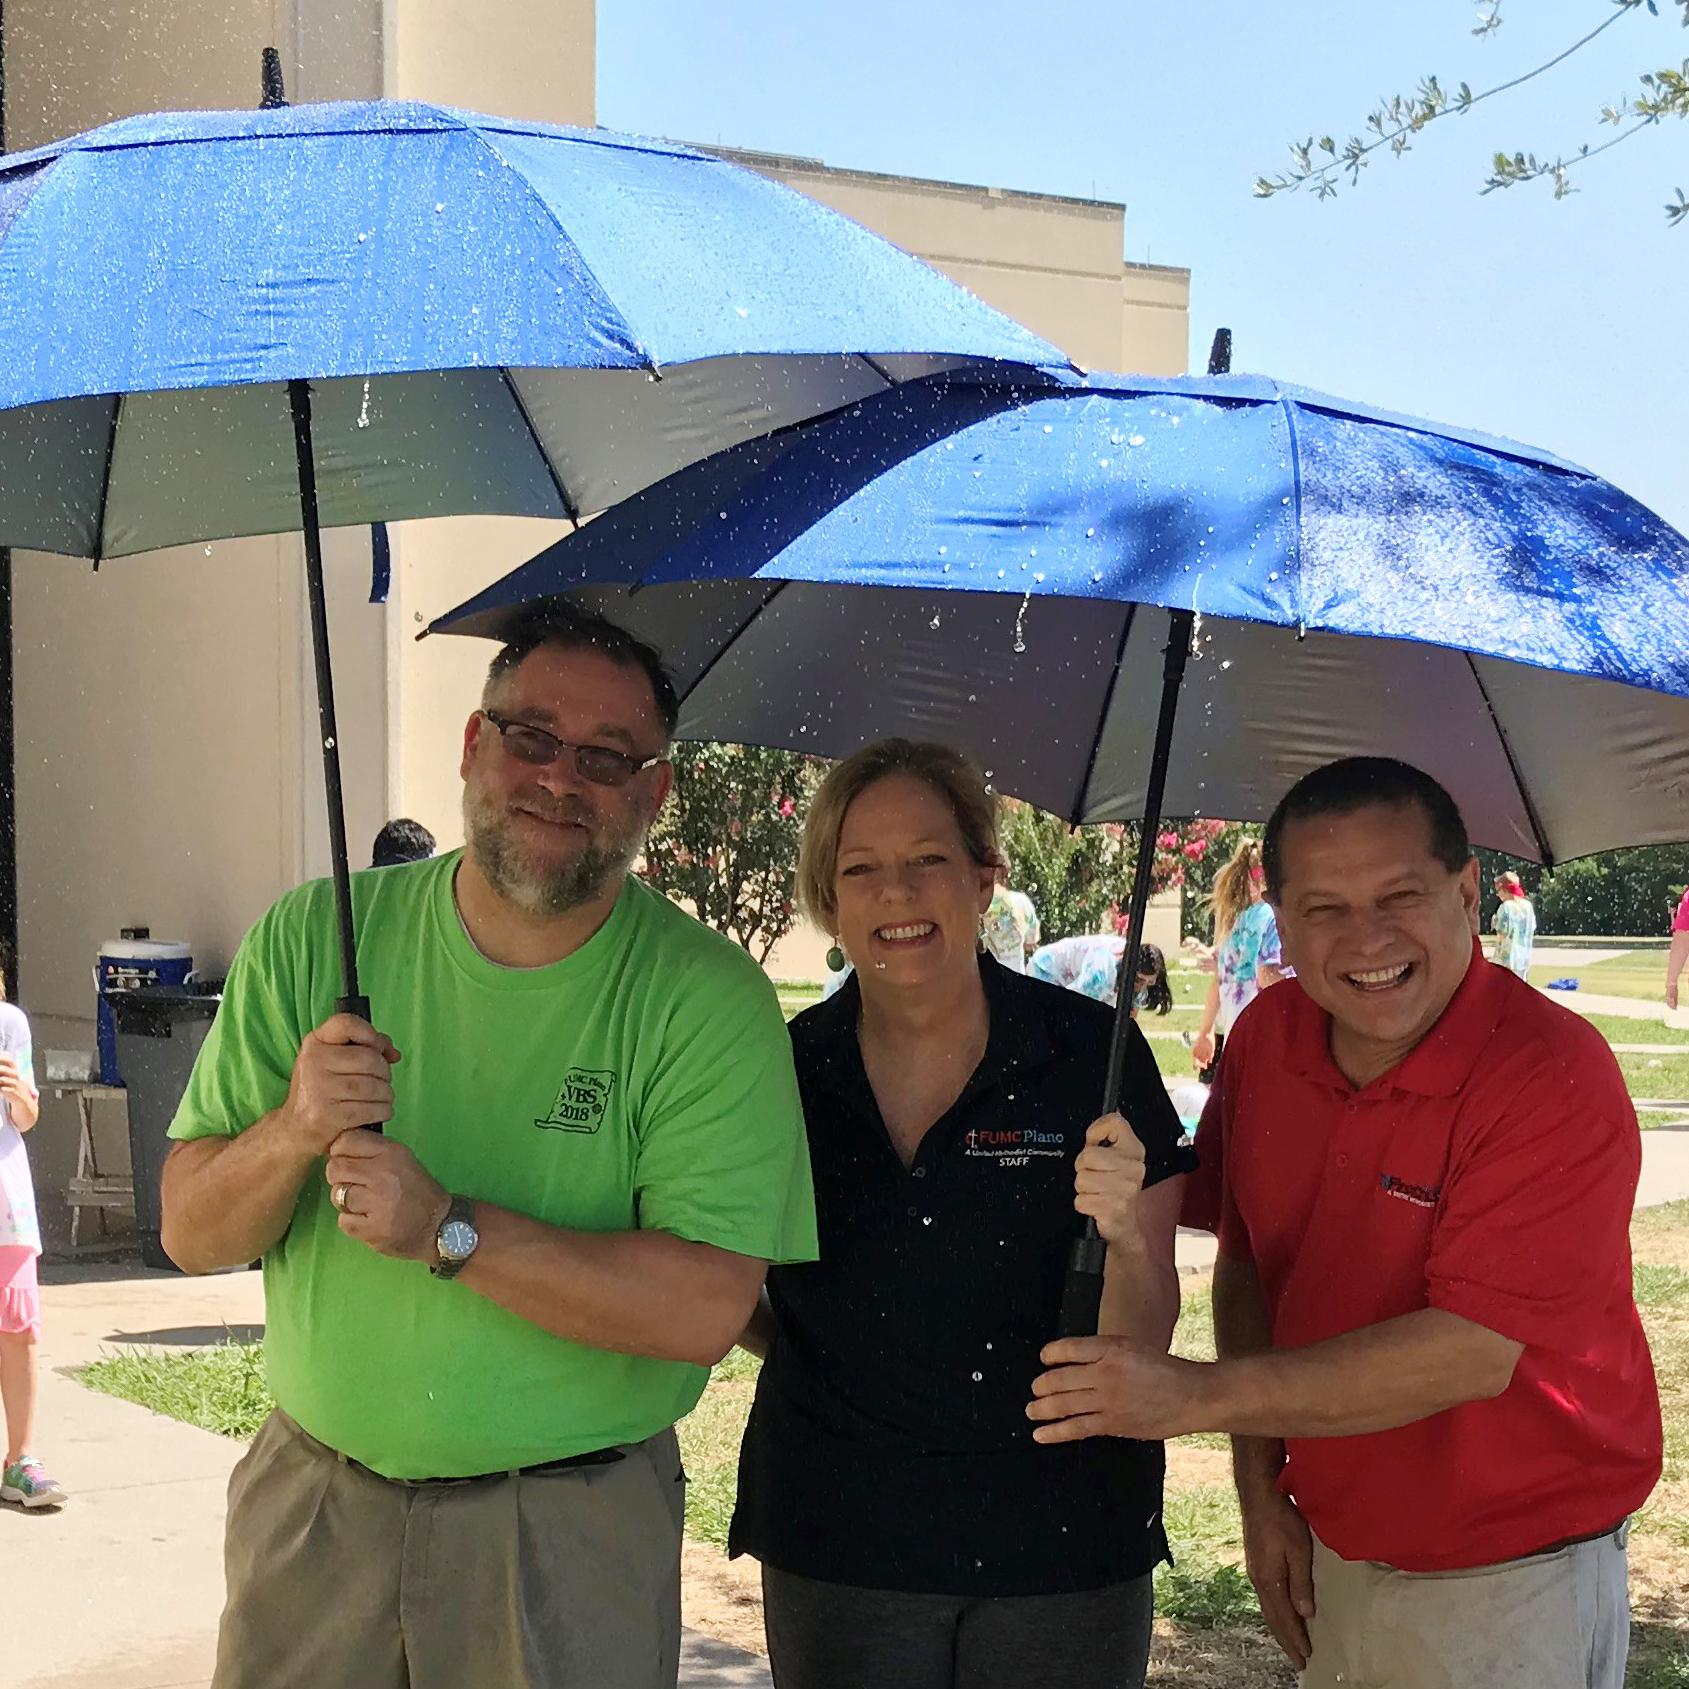 Our Hospitality Team also purchased beautiful BIG umbrellas for our Connectors to use on rainy days to welcome our guests and church members.